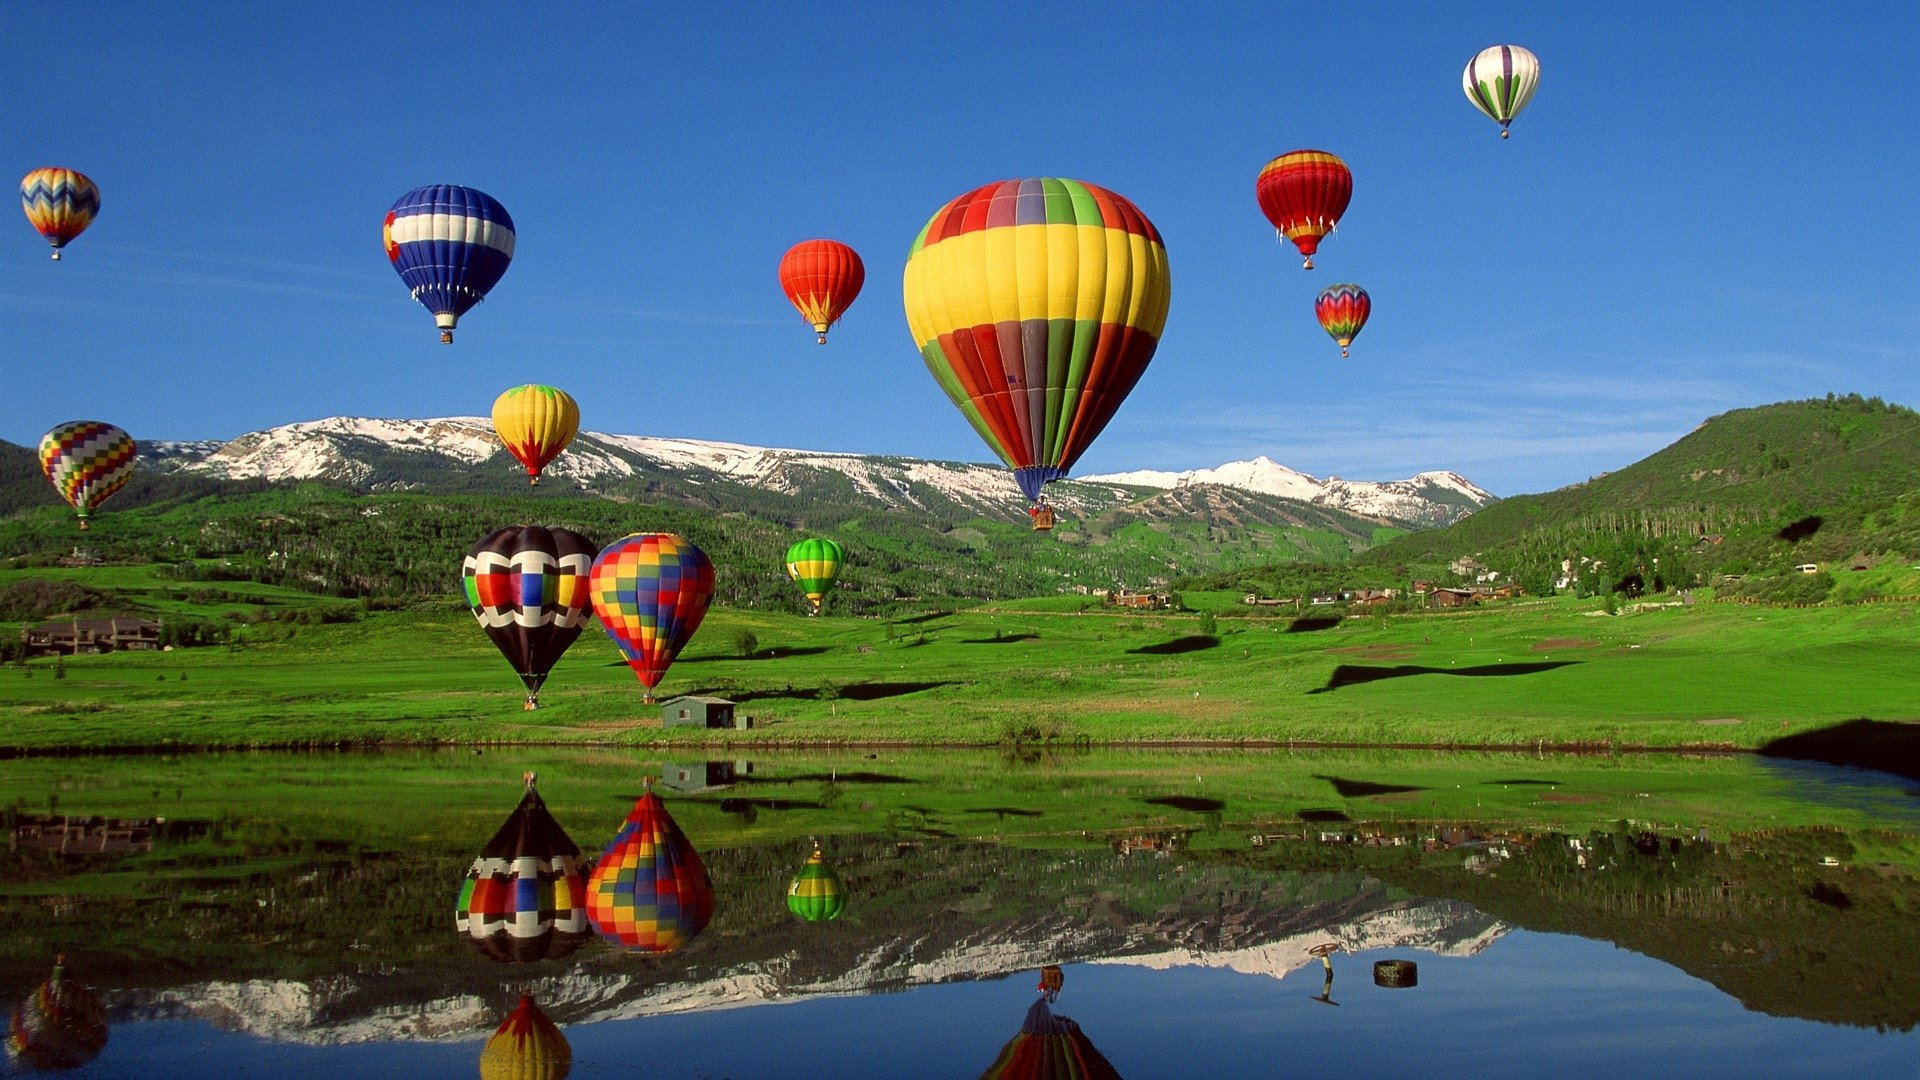 Hot Air Balloon: Your 10-Minute Most Exhilarating Ride